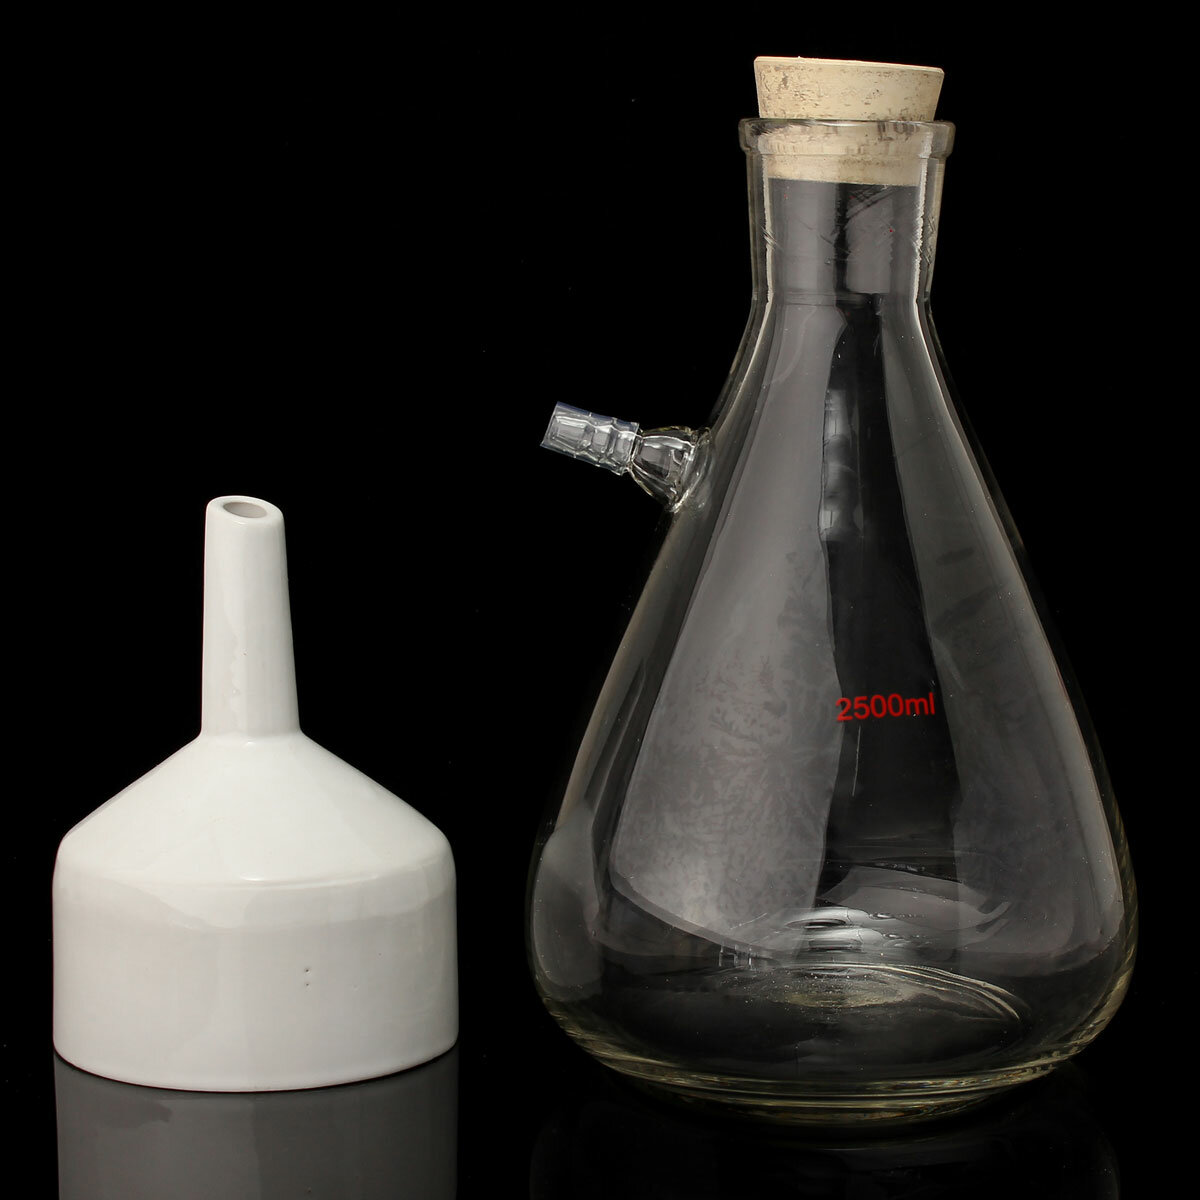 2500mL Filteration Buchner Funnel Kit Vacuum Suction Glass Flask Apparatus